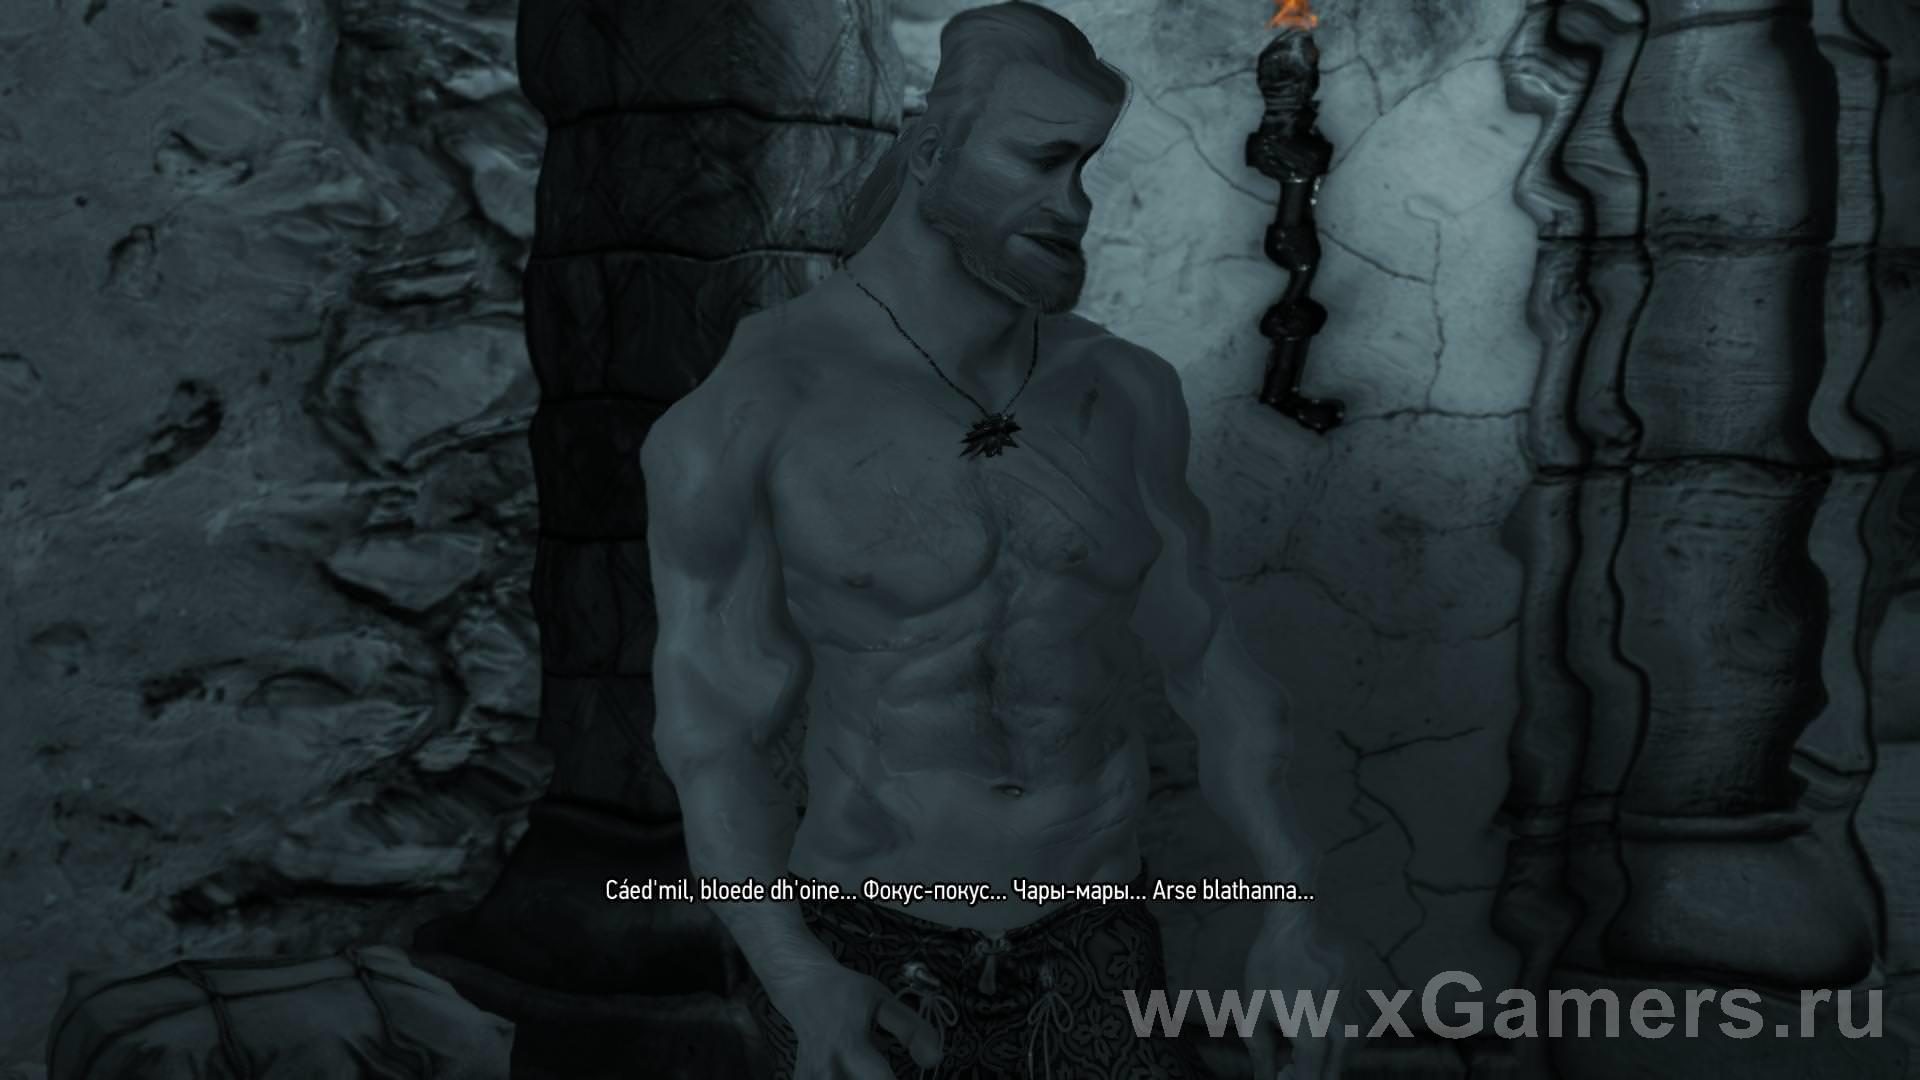 Next Geralt reads a very complex magic spell and begins the session.